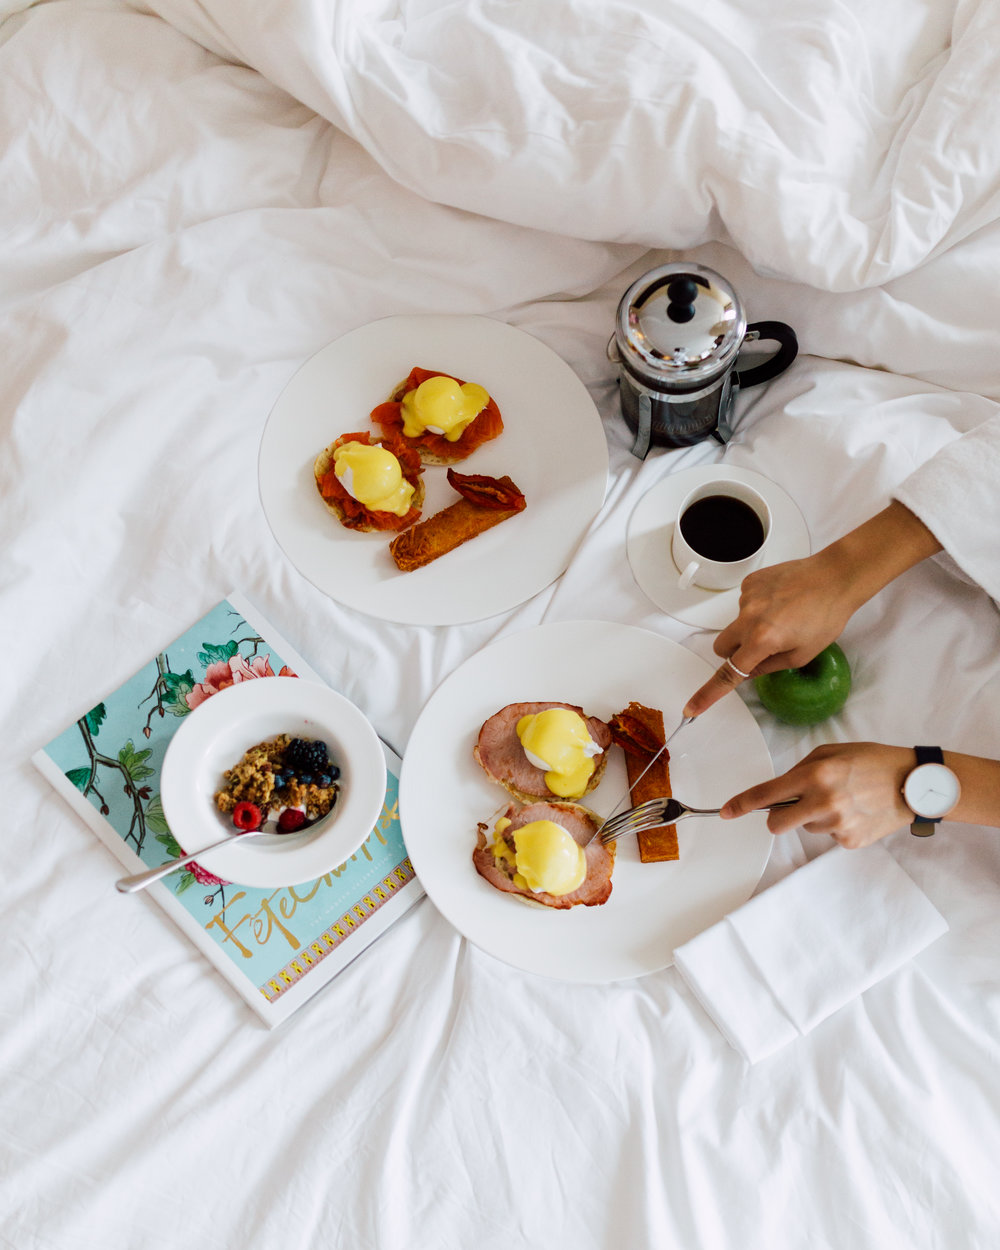 Luxury lifestyle breakfast by a social media photographer